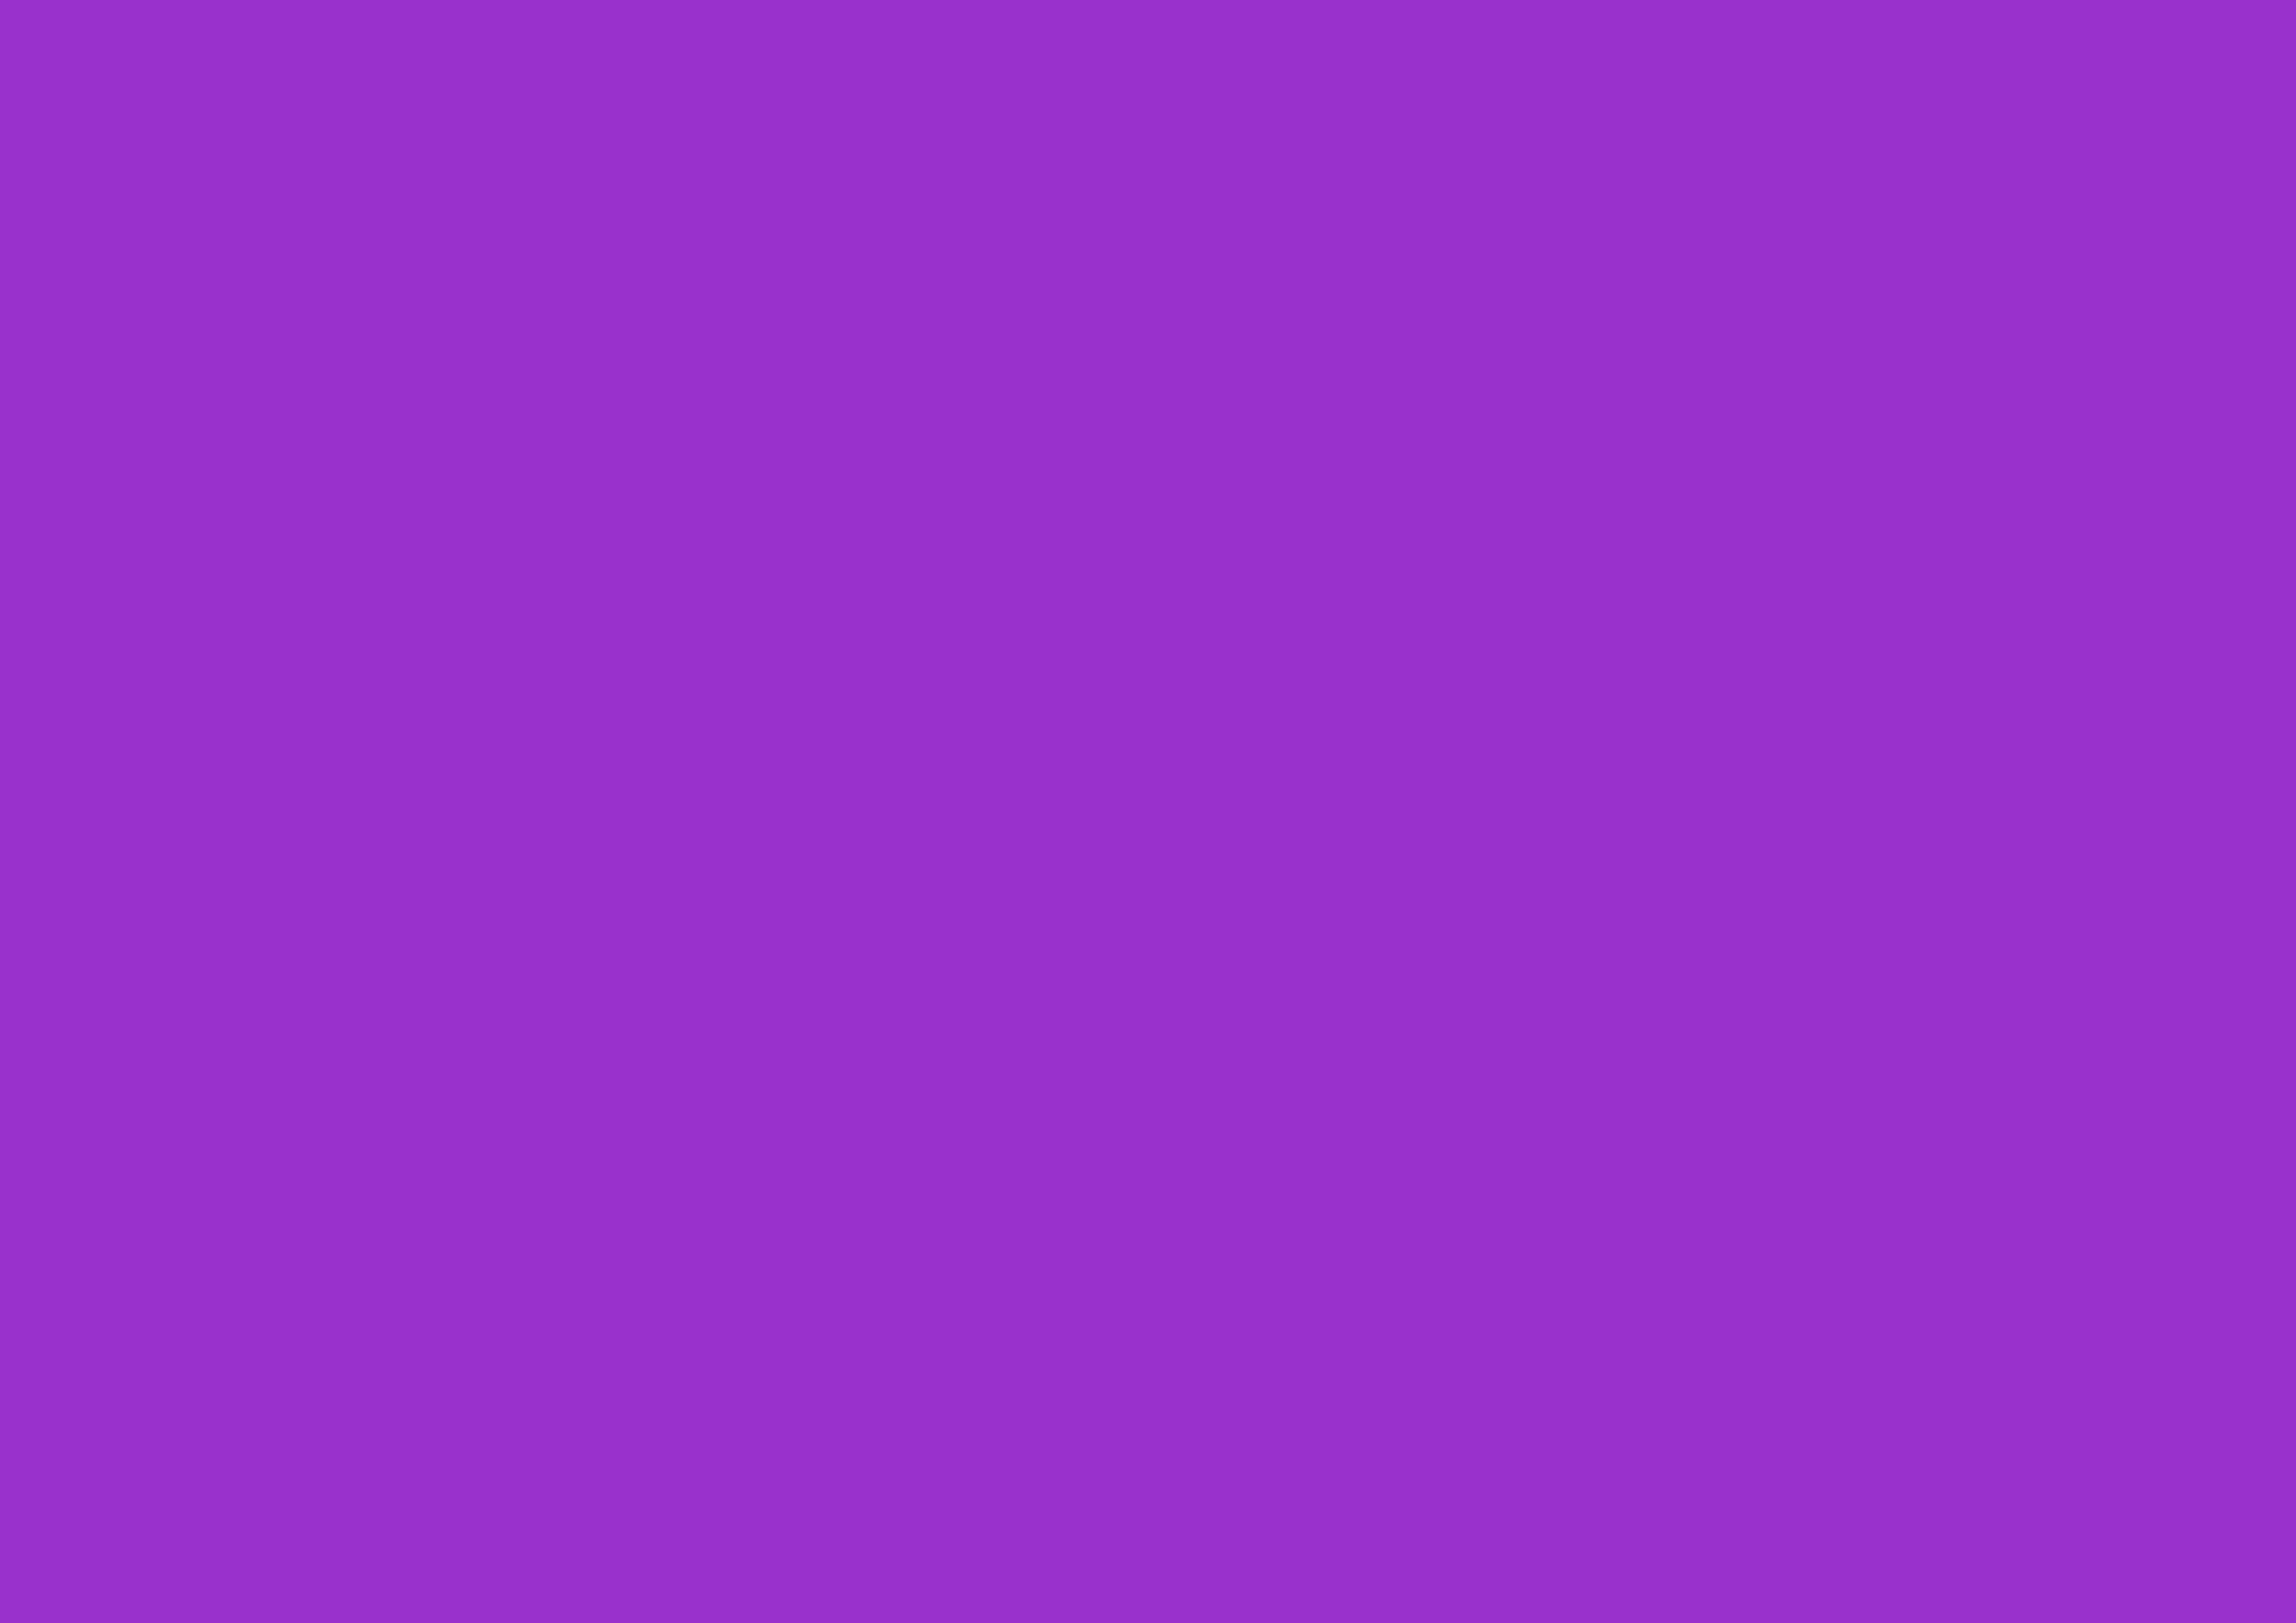 3508x2480 Dark Orchid Solid Color Background